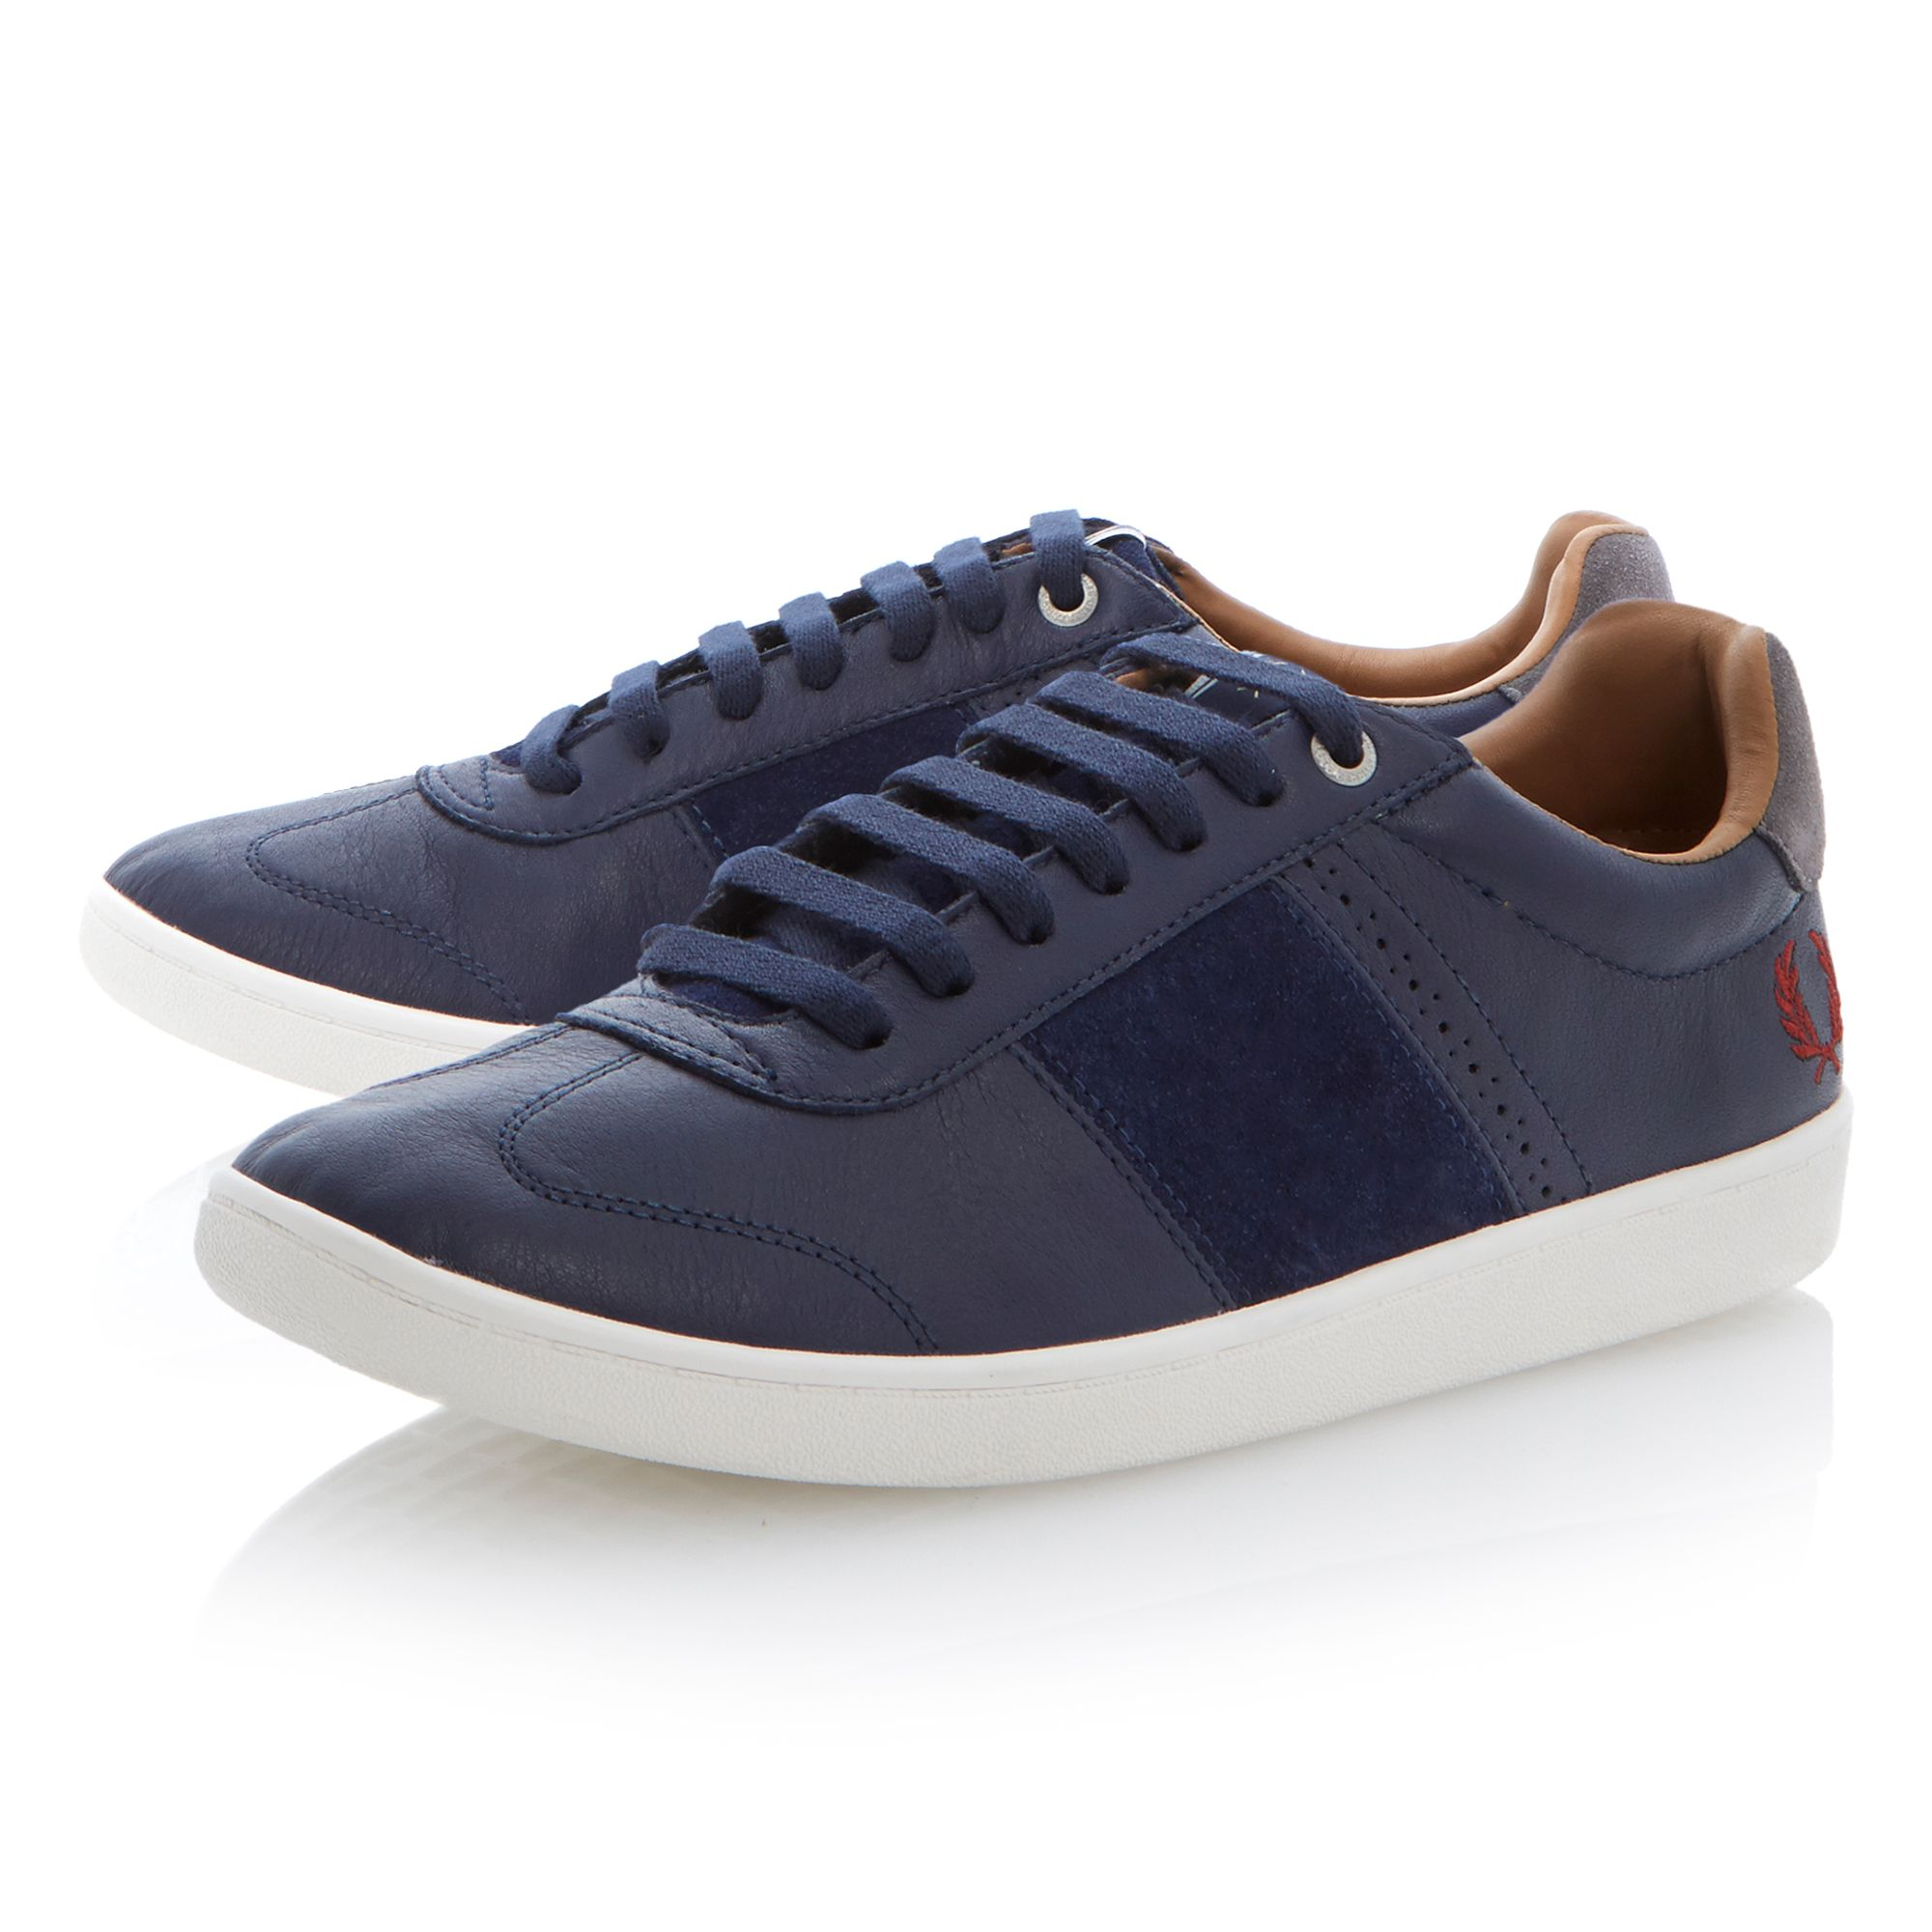 Sebright lace up leather trainers